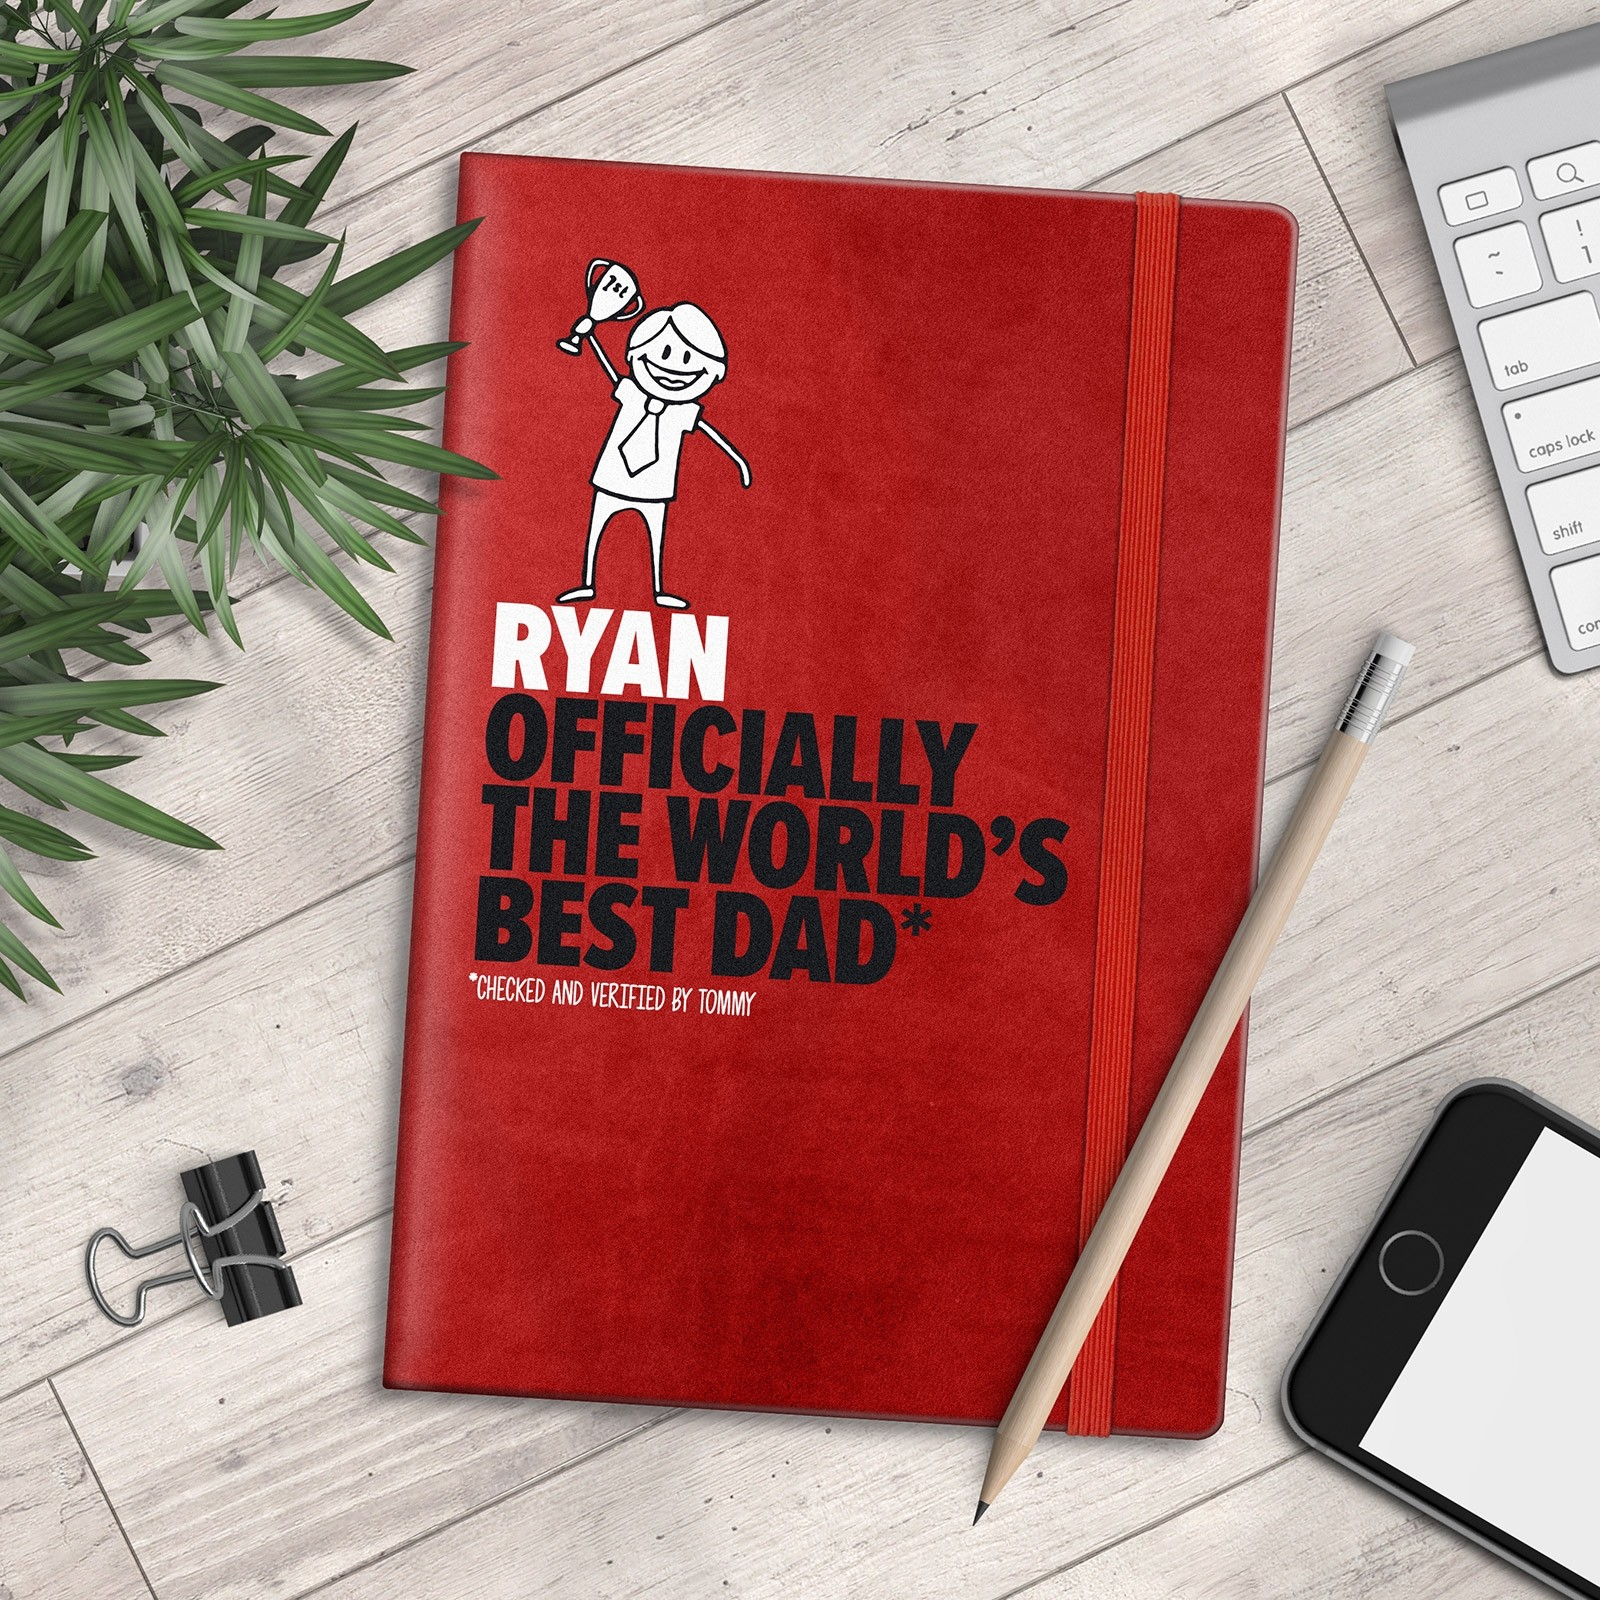 Personalised A5 Notebook - Officially The World's Best Dad - myNo Book